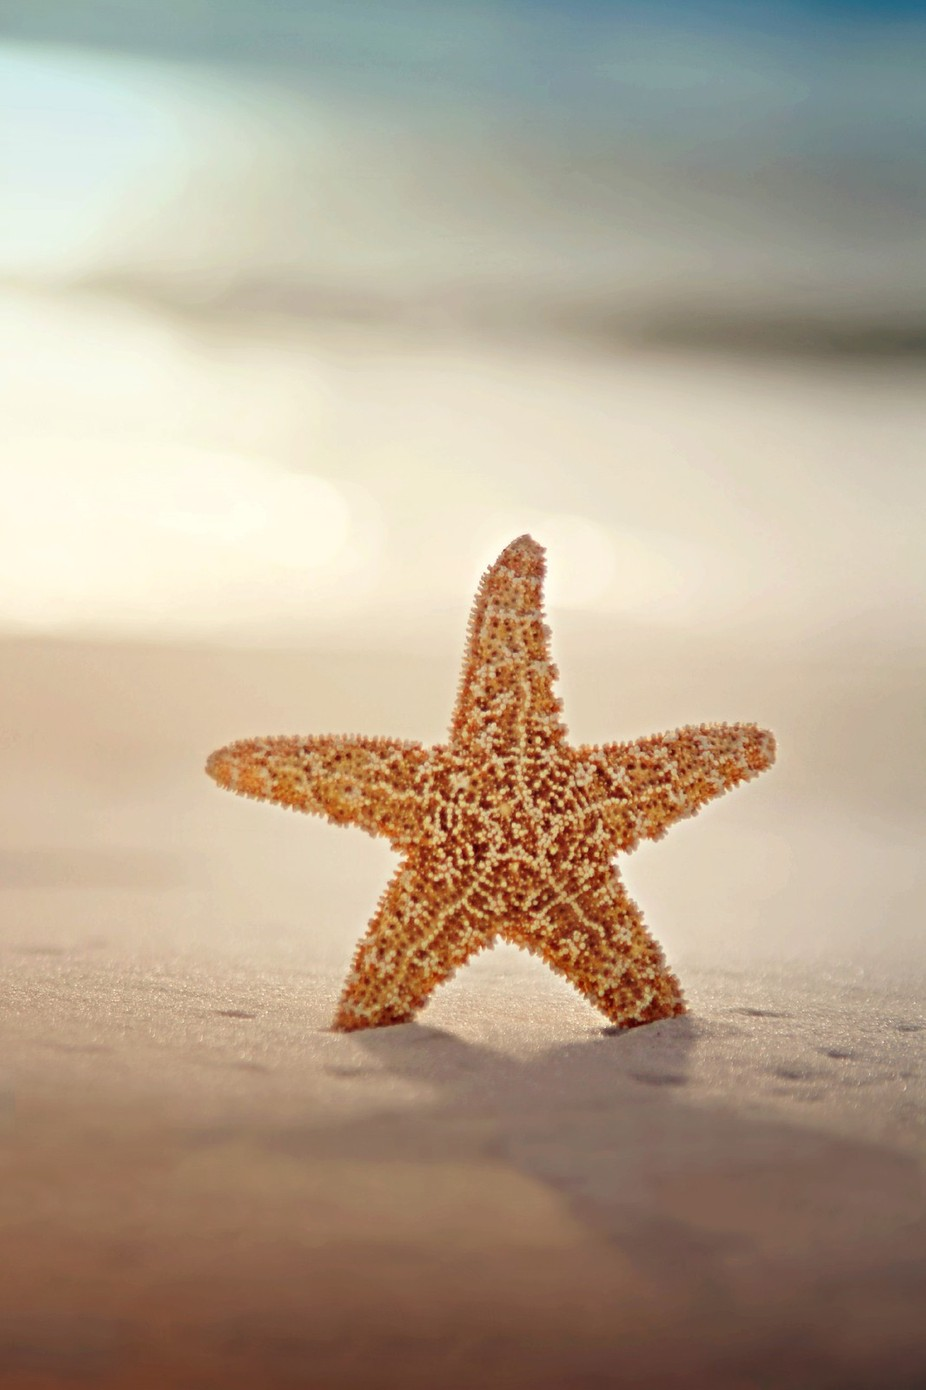 Not all stars belong to the sky by KatieMcKinneyPhotography - Above Or Below Photo Contest